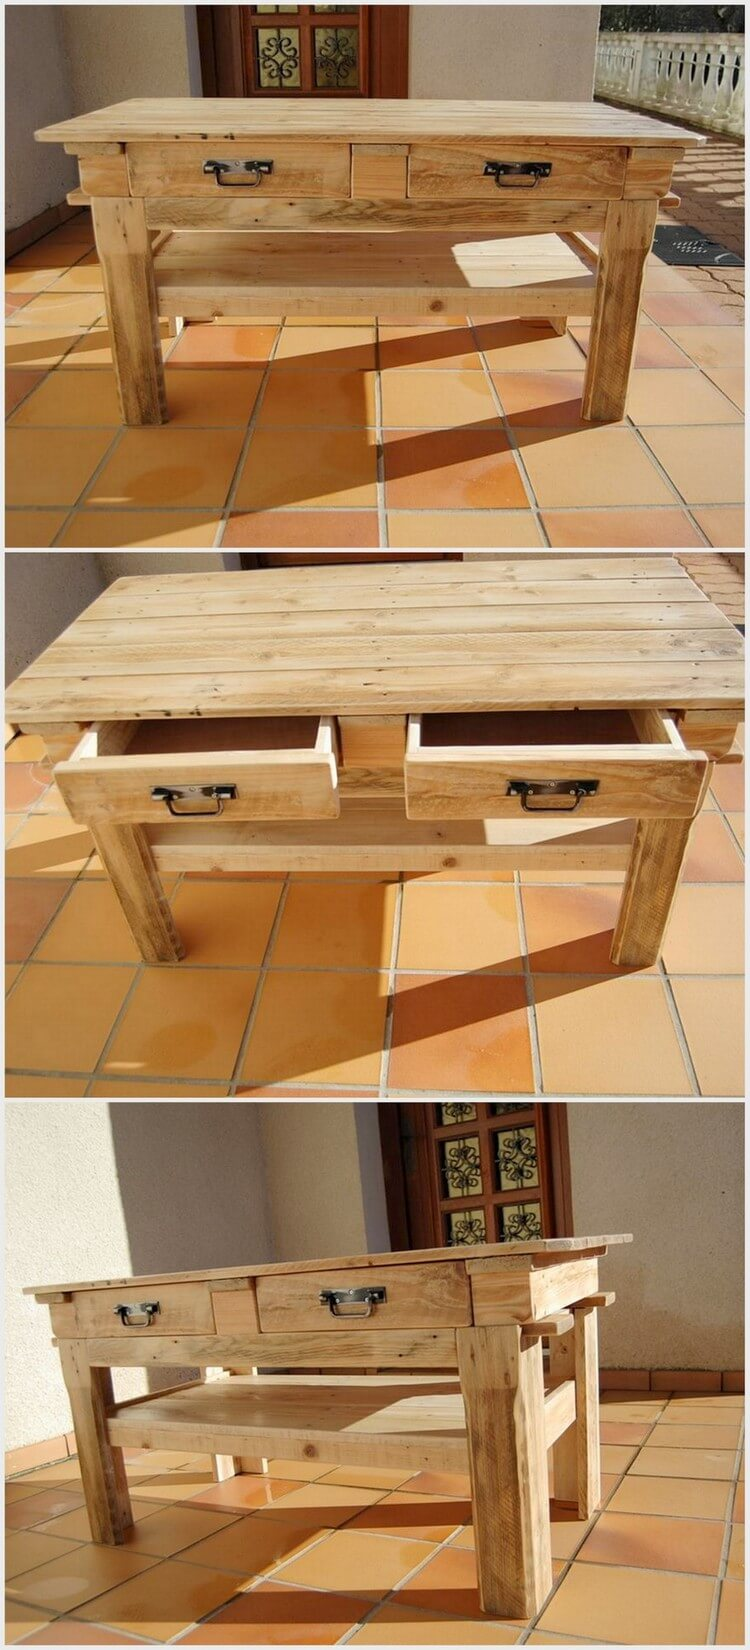 Awesome ideas for wooden pallet repurposing pallet wood for Repurposed pallet projects